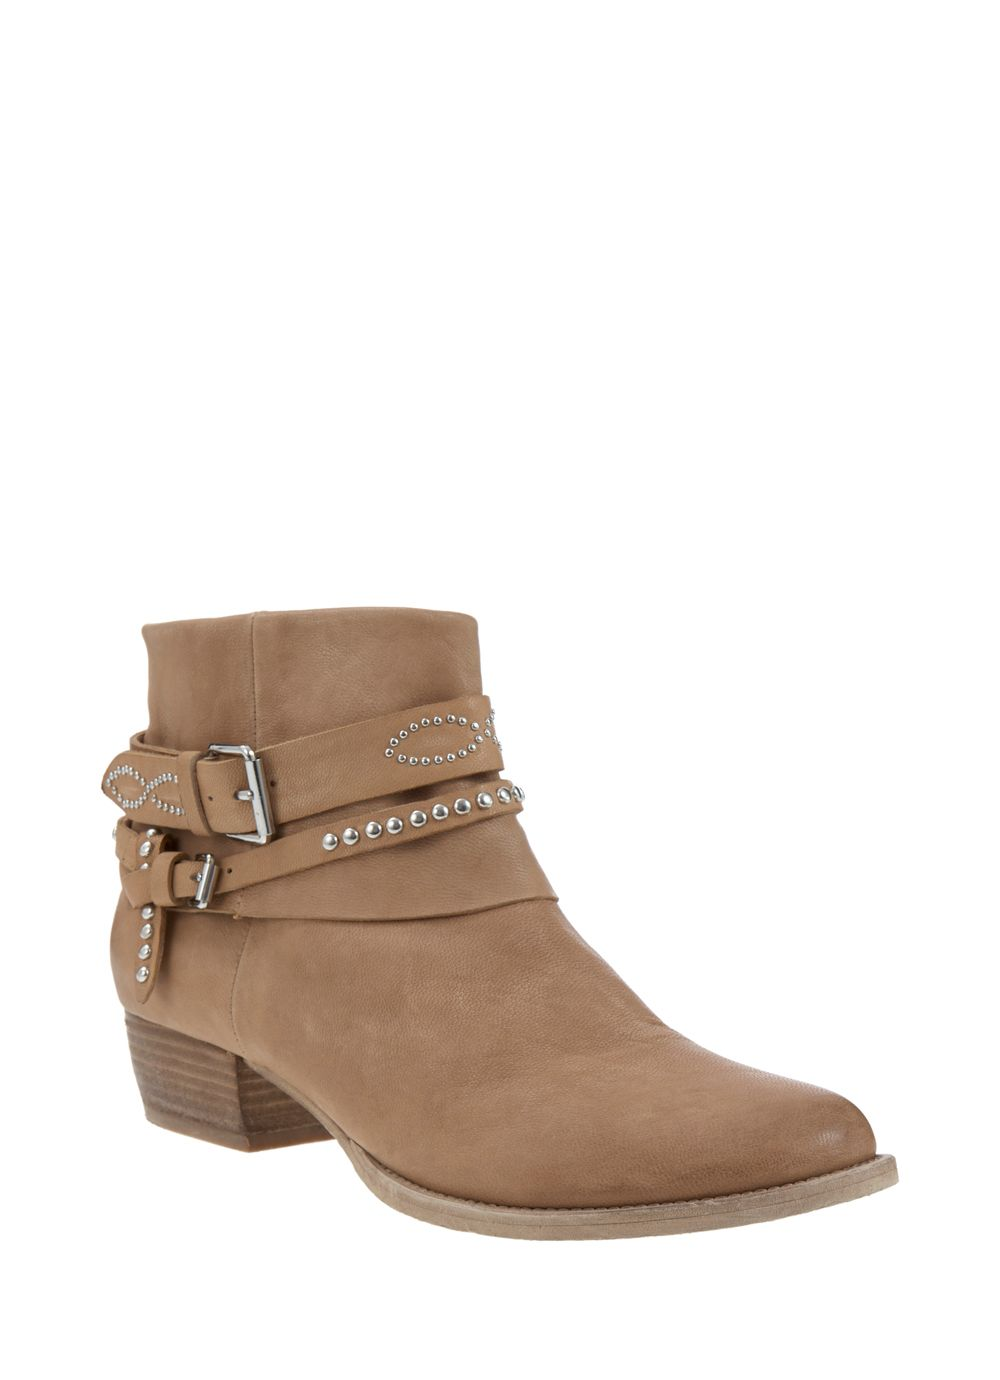 Nude lucy ankle boot